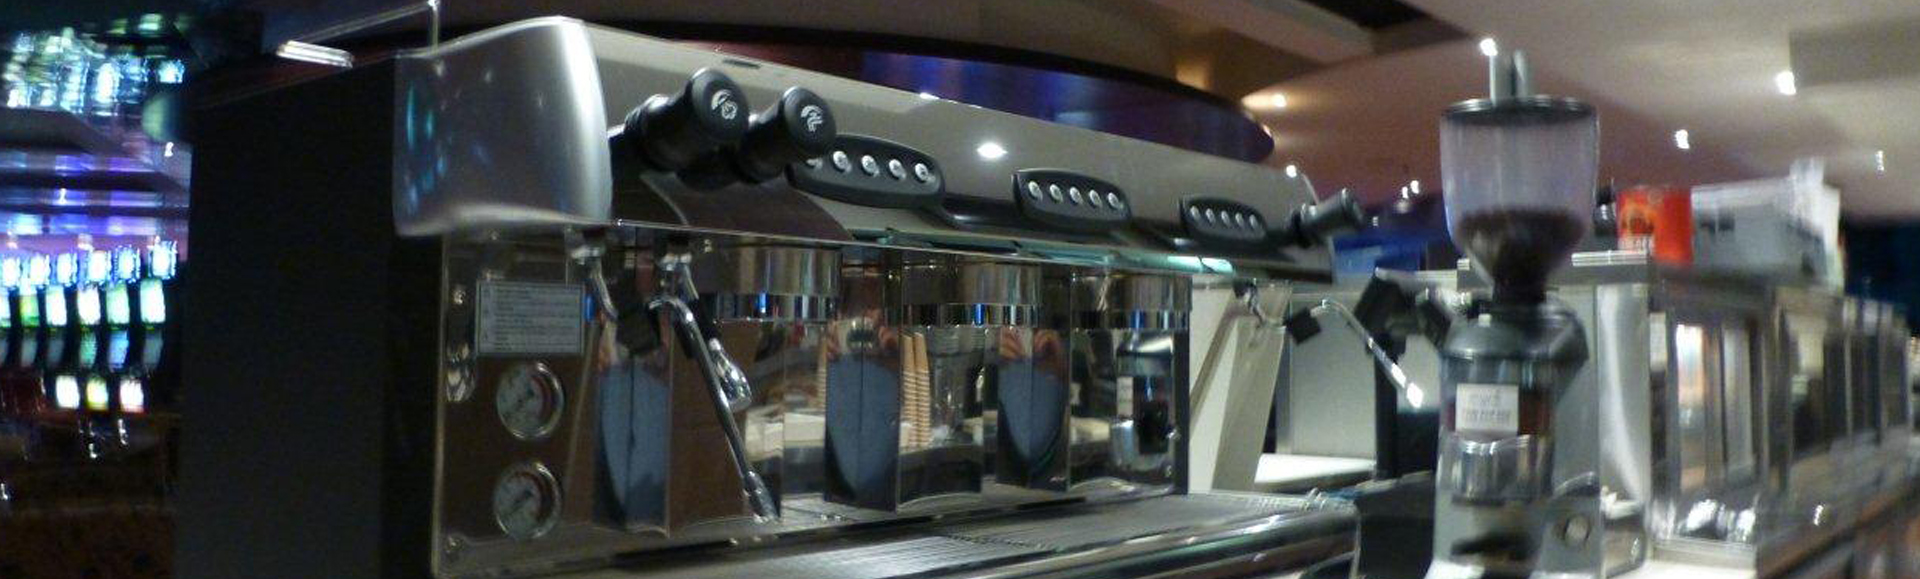 ALL COFFEE MACHINES MAKES COVERED